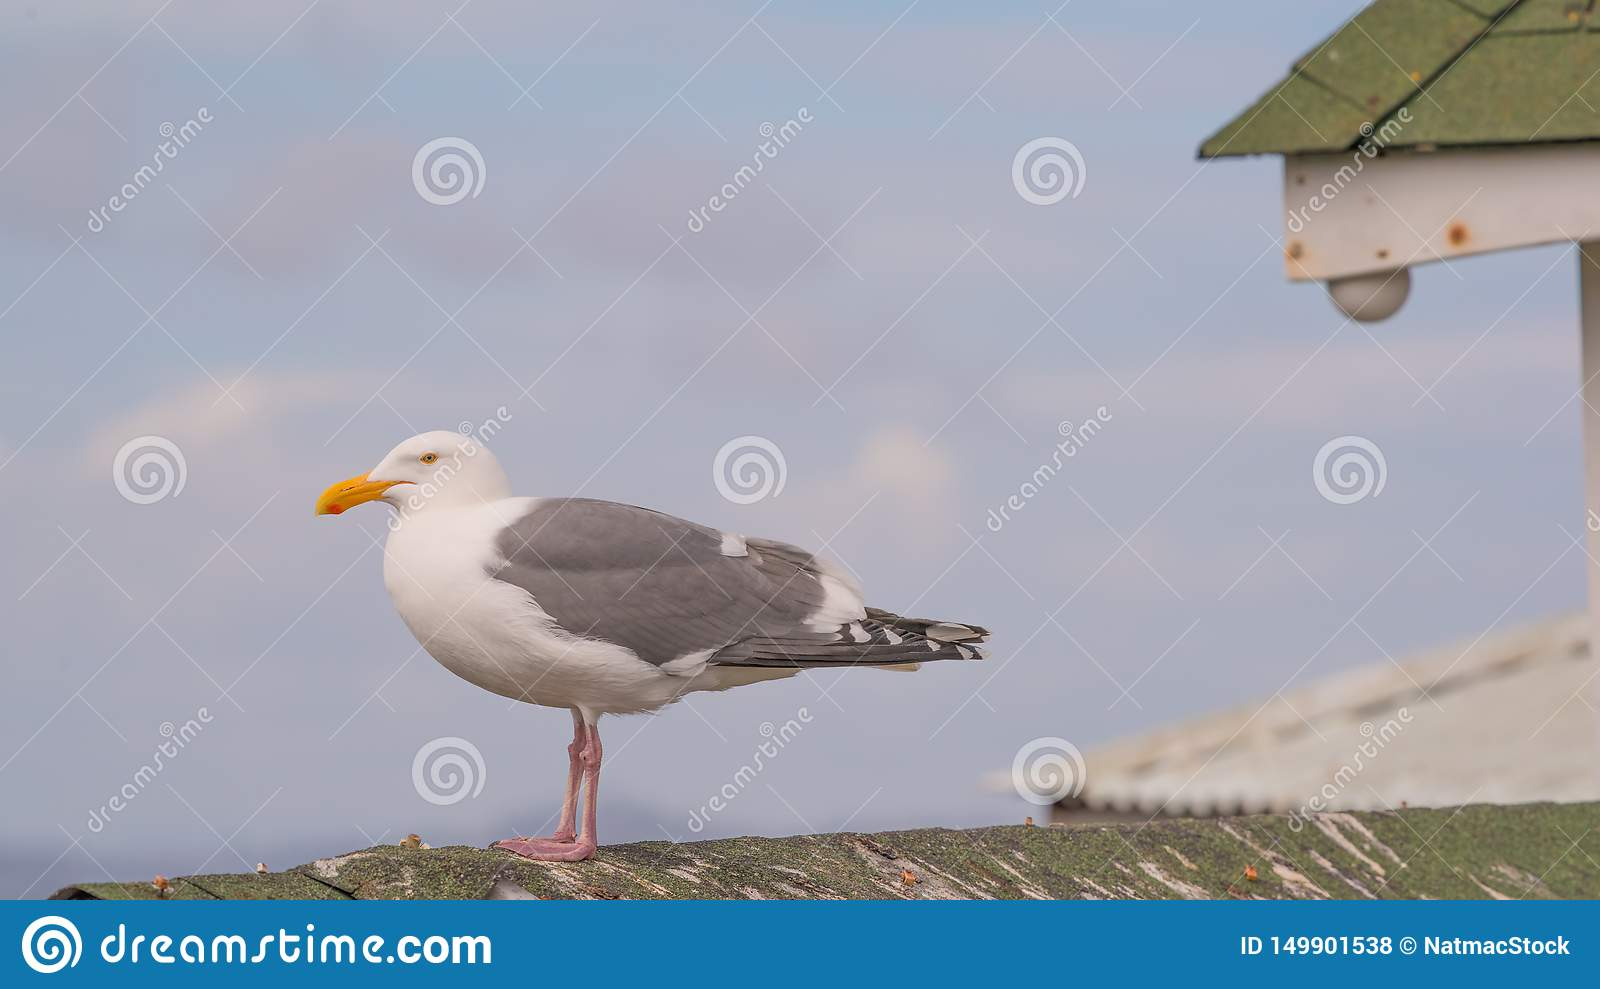 Close up portrait of sea gull  on roof of structure with sunny blue skies and puffy white clouds in background - Fisherman